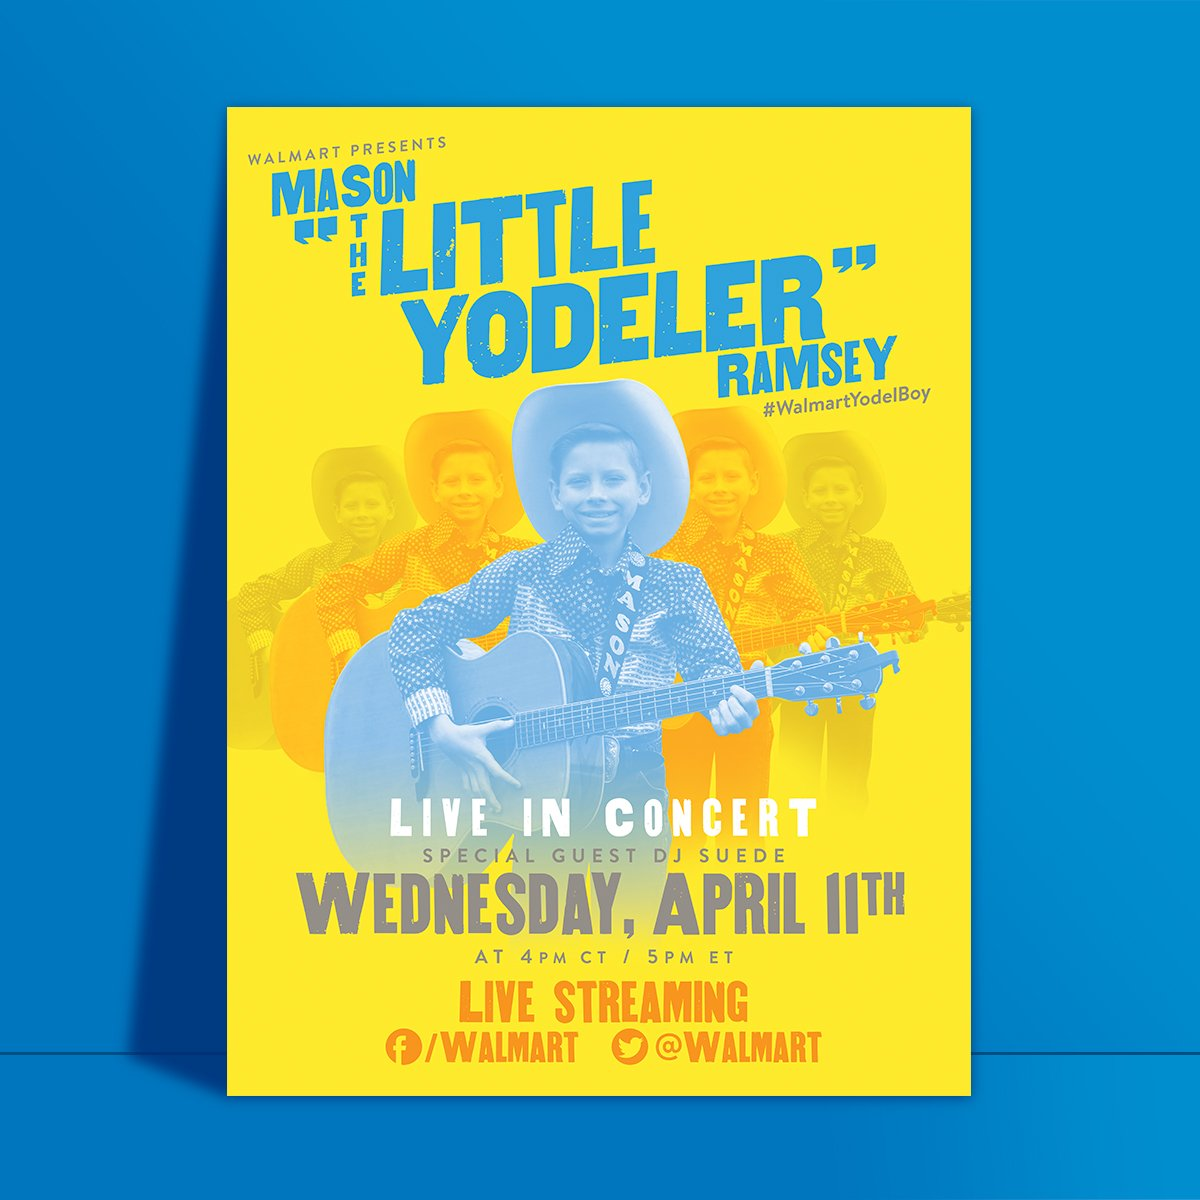 Want to wish @theMasonRamsey good luck for his LIVE concert on April 11? Send Mason a shout-out video using #WalmartYodelBoy for a chance to have it live streamed tomorrow!